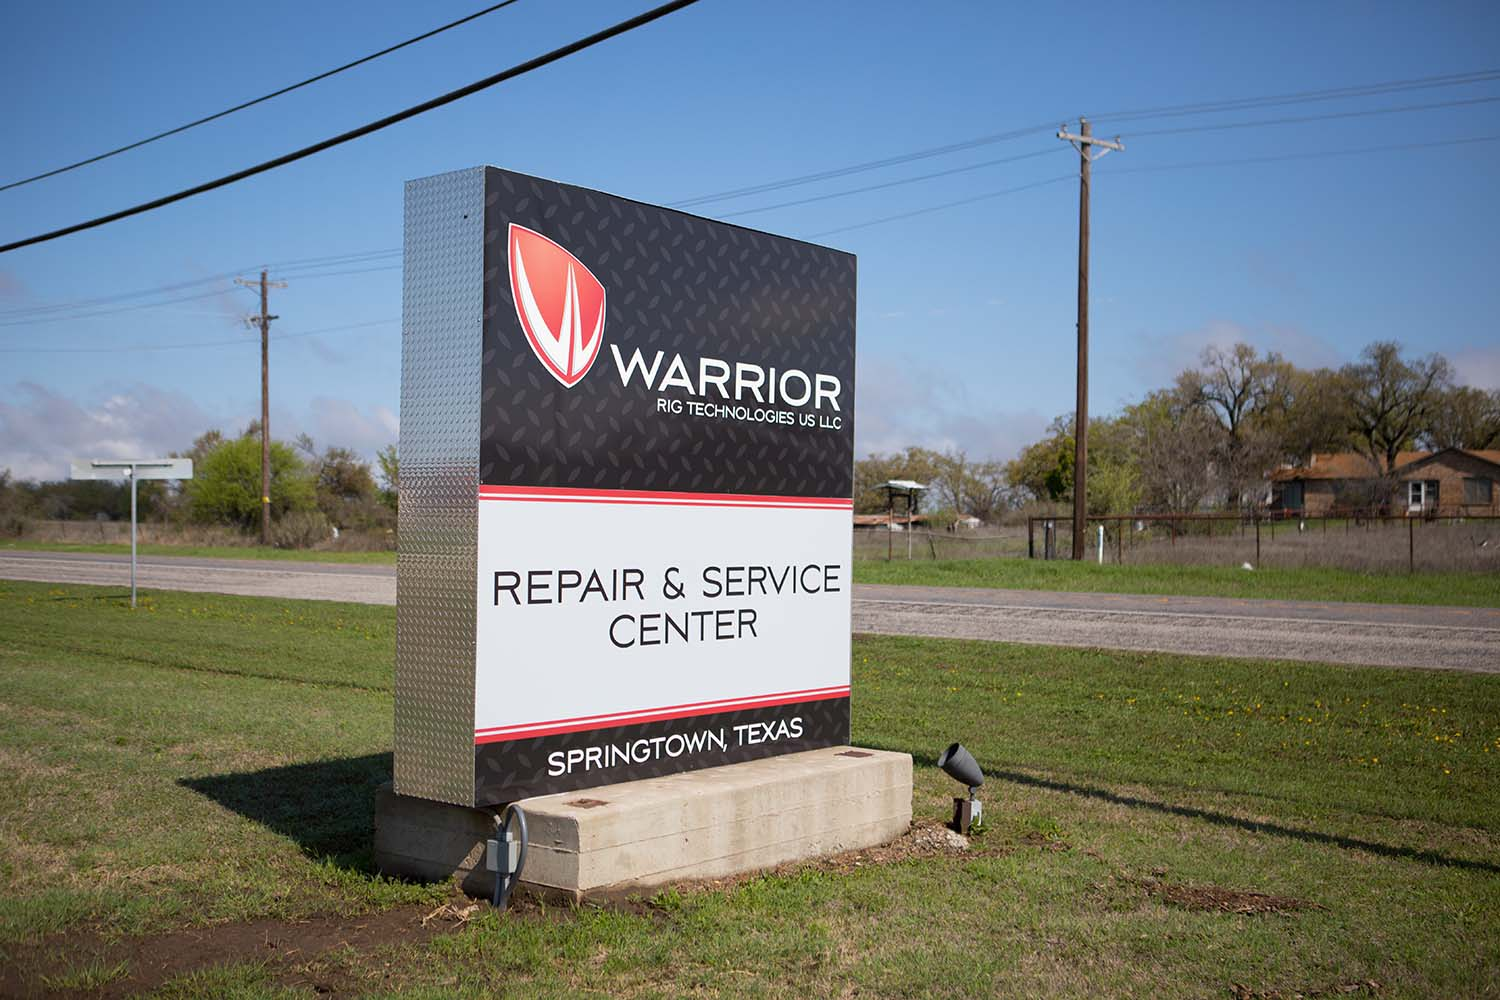 Warrior Repair & Service Center